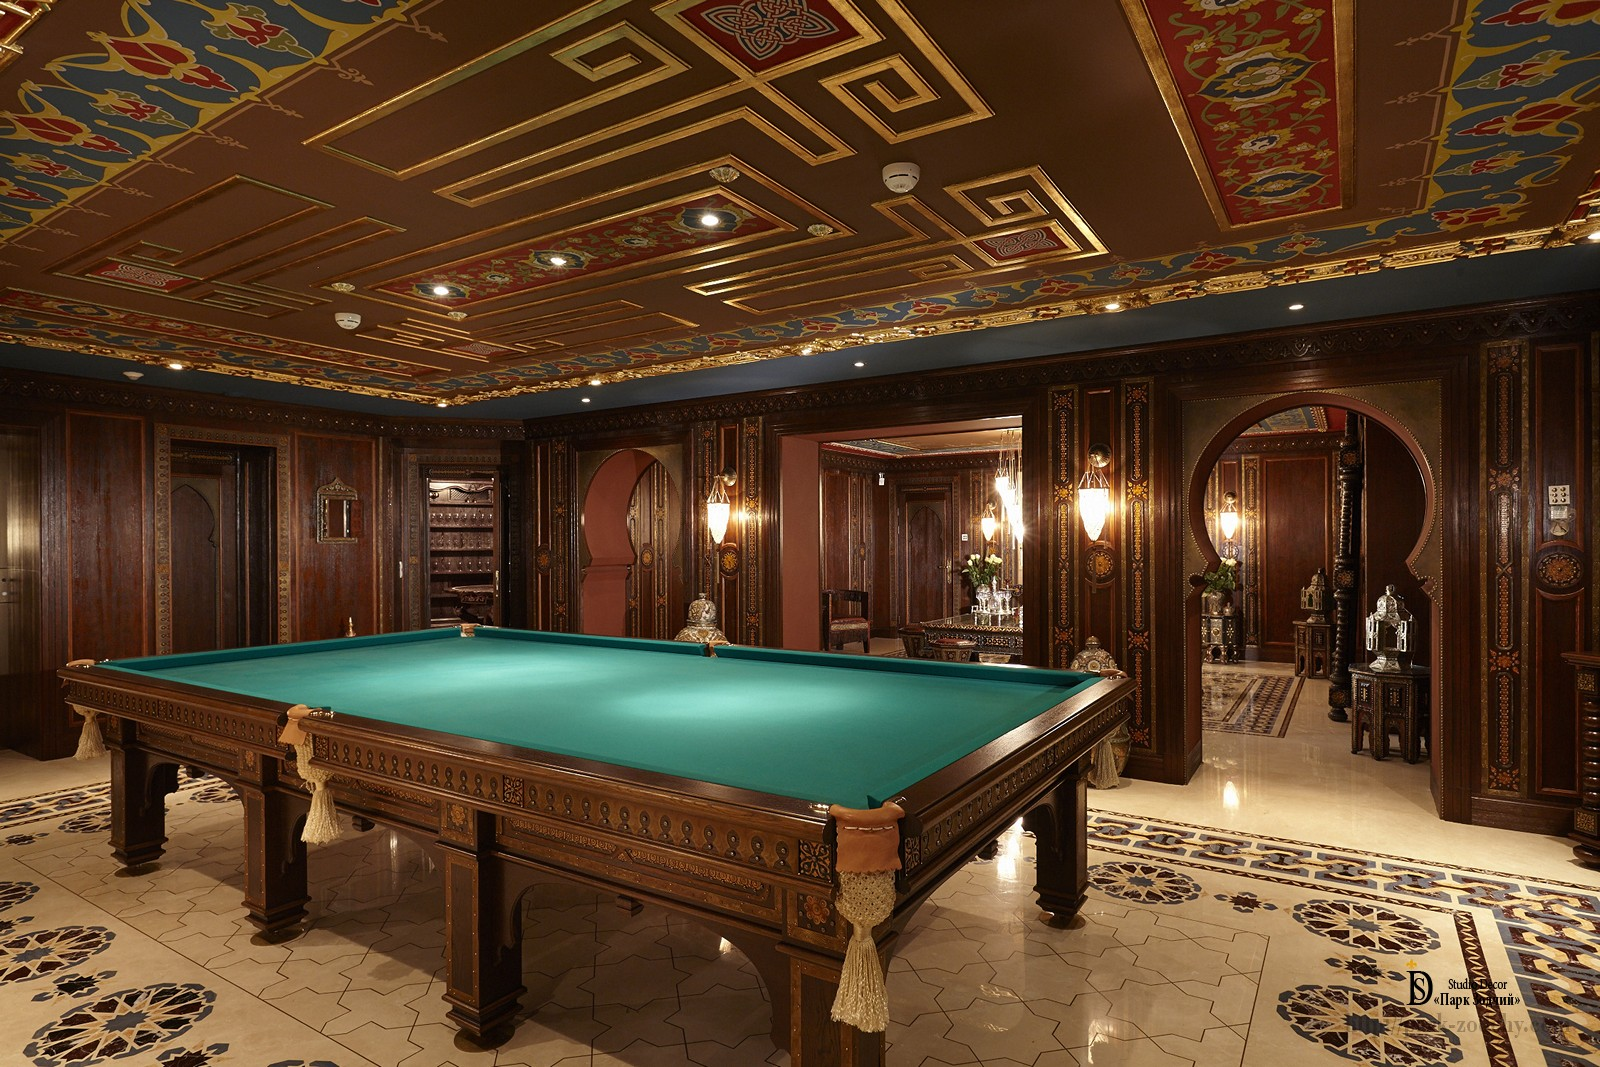 The billiard room decorated in a Moroccan style